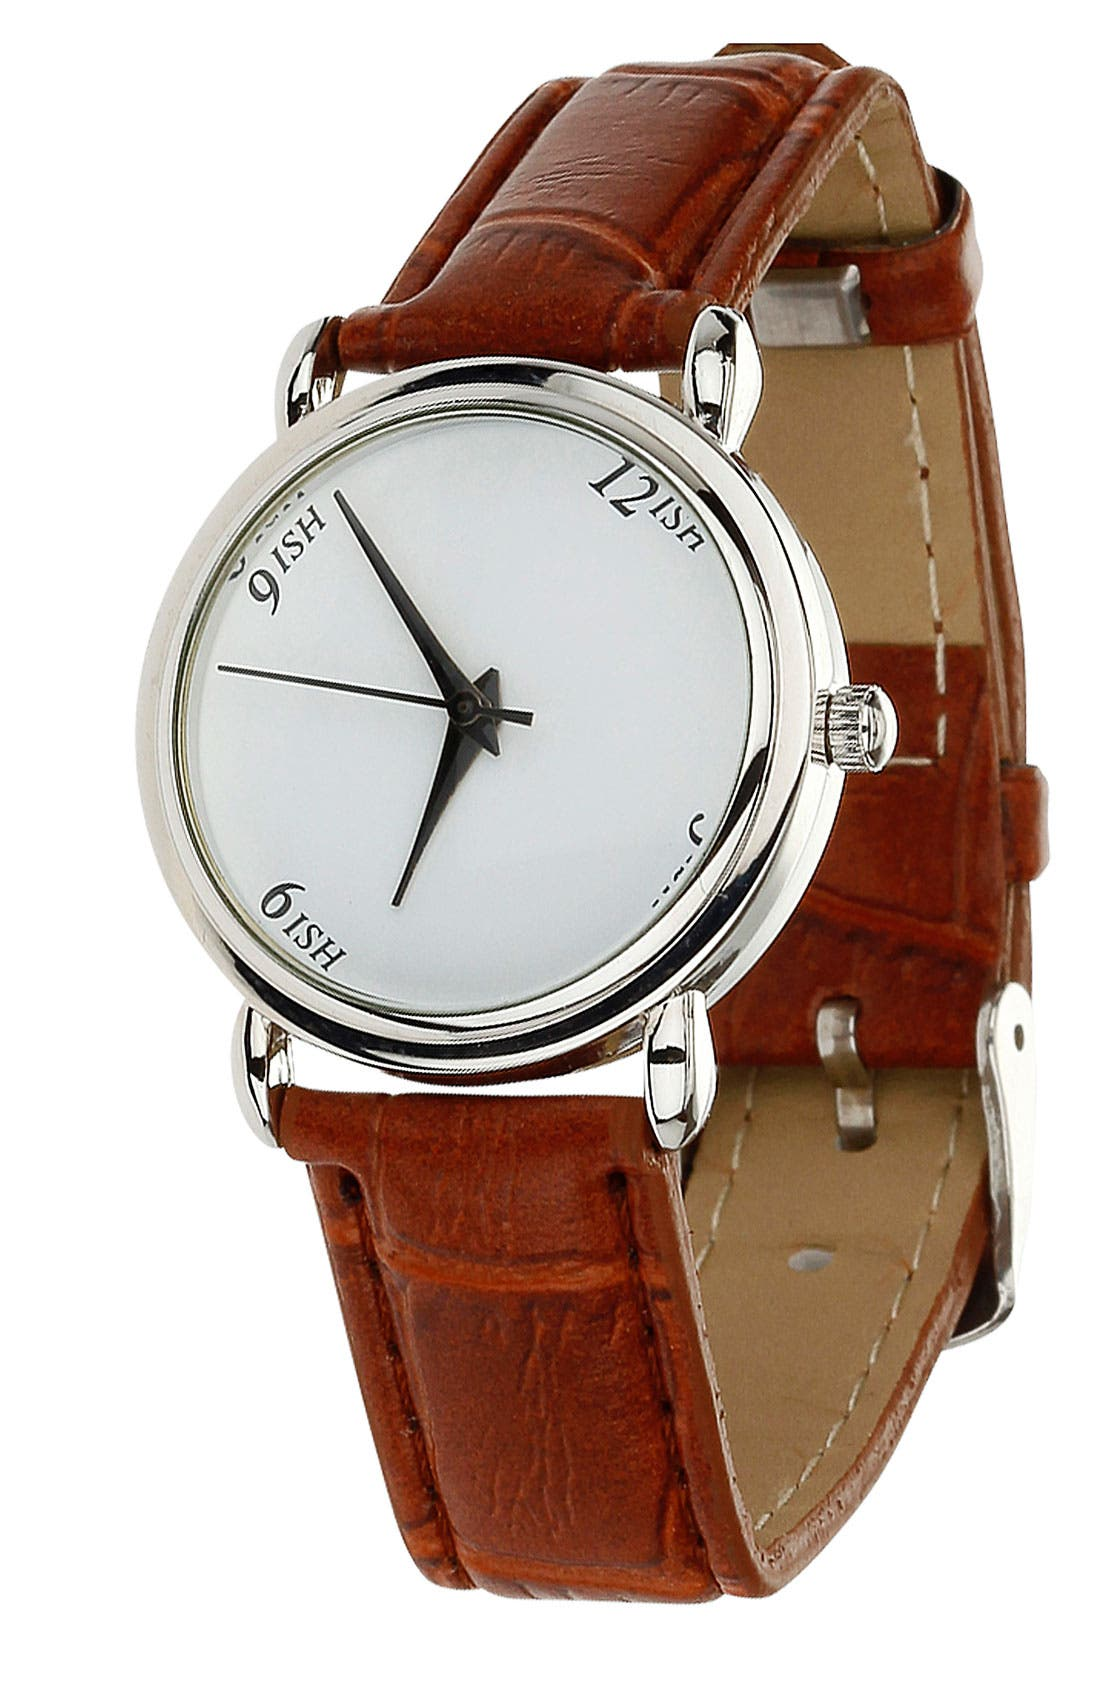 Alternate Image 1 Selected - Topman 'Ish' Leather Watch